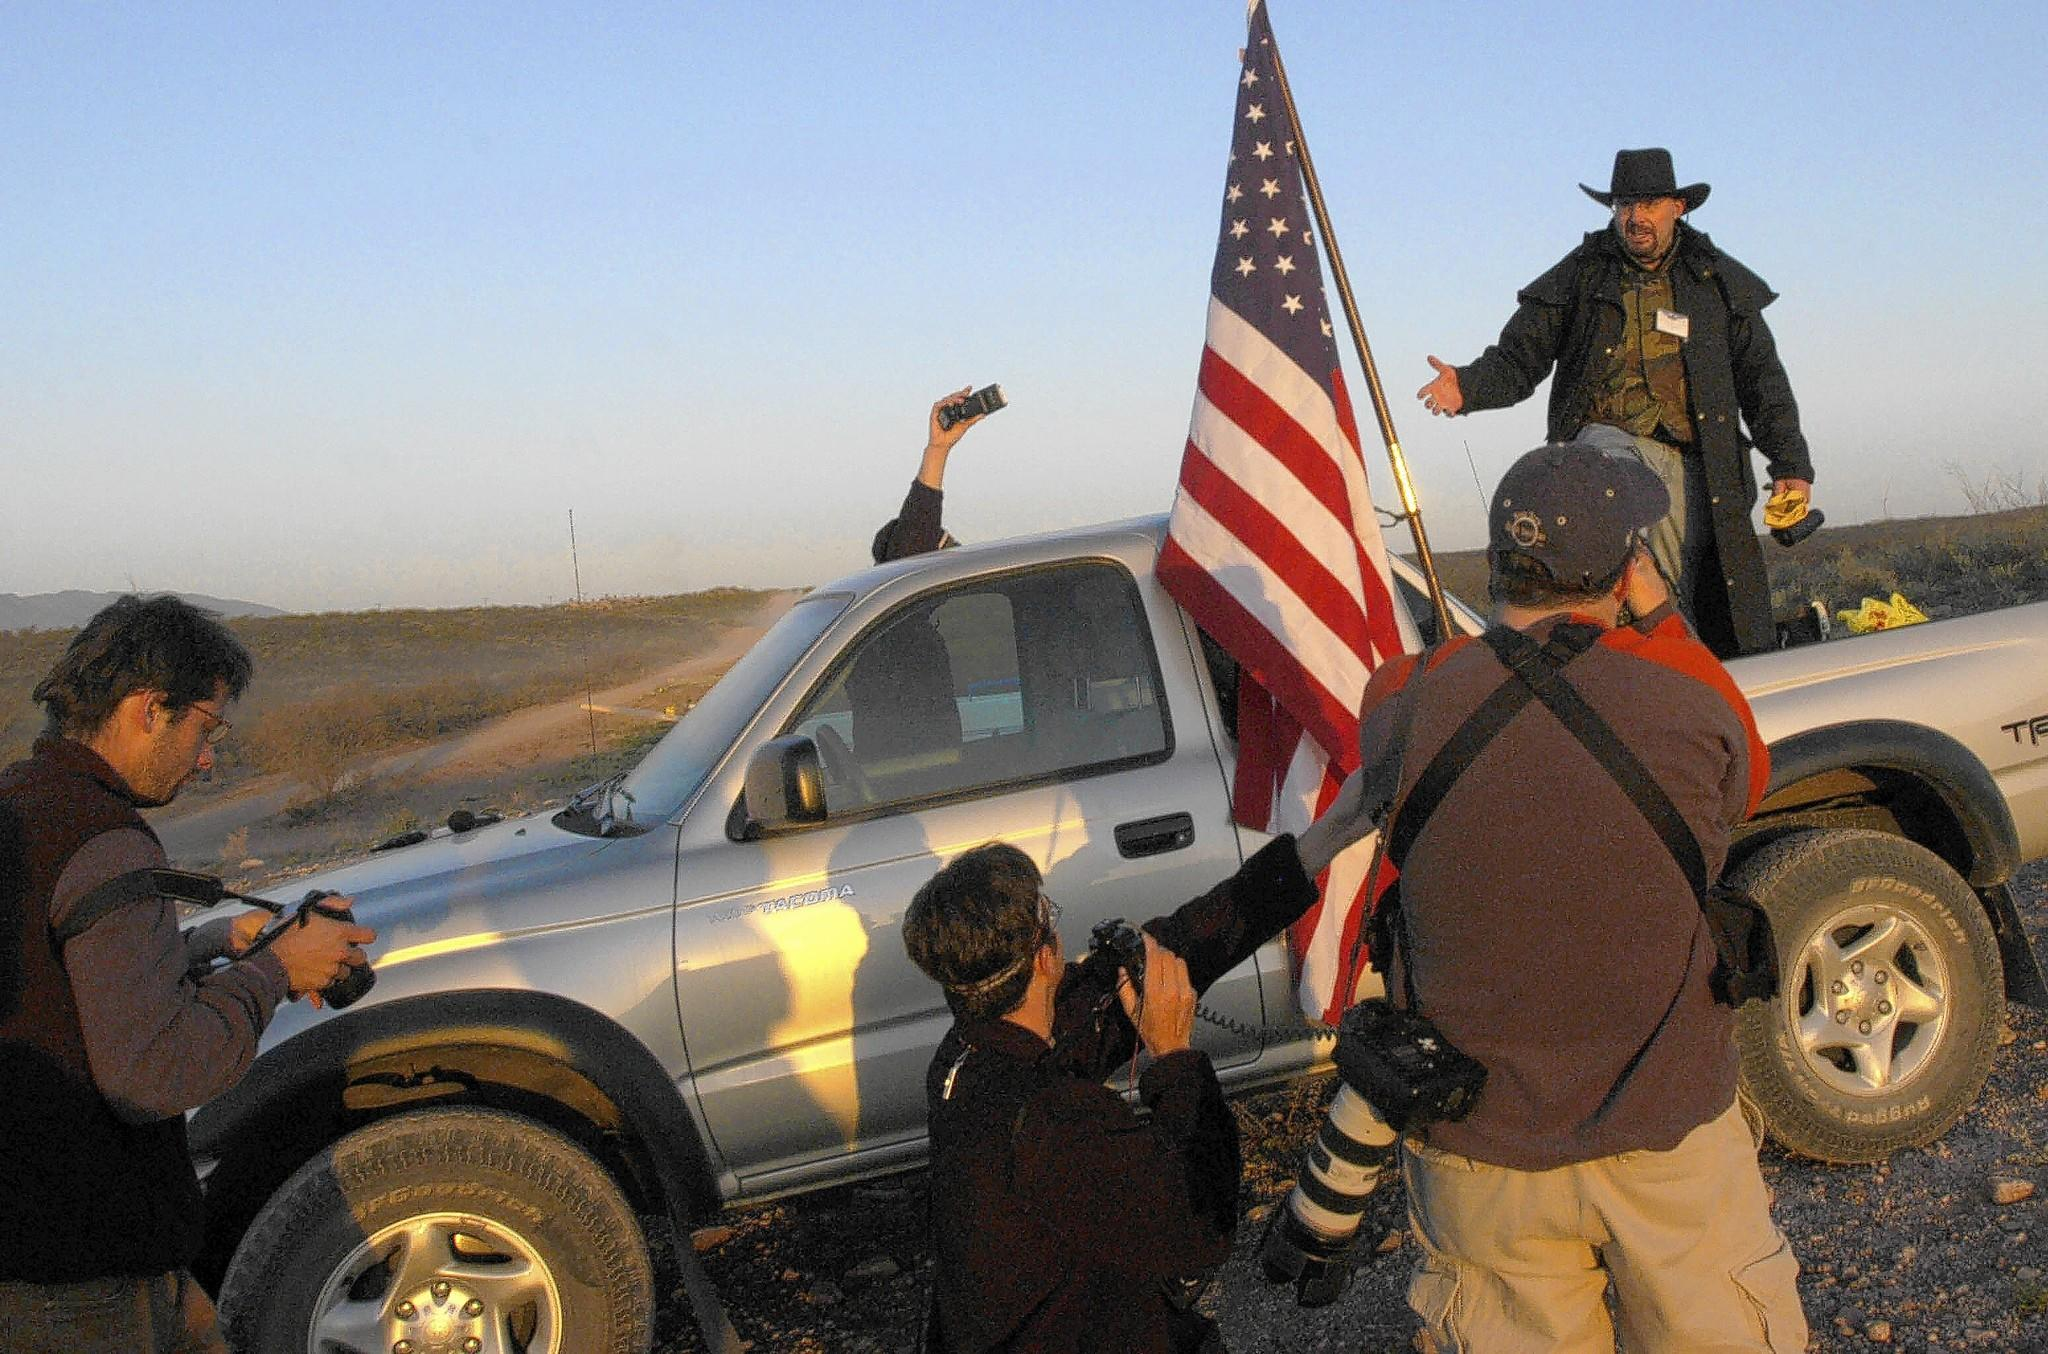 In April 2005, Minuteman volunteer Tim Donnelly speaks to journalists after spending the night monitoring the U.S.-Mexico border near Douglas, Ariz.